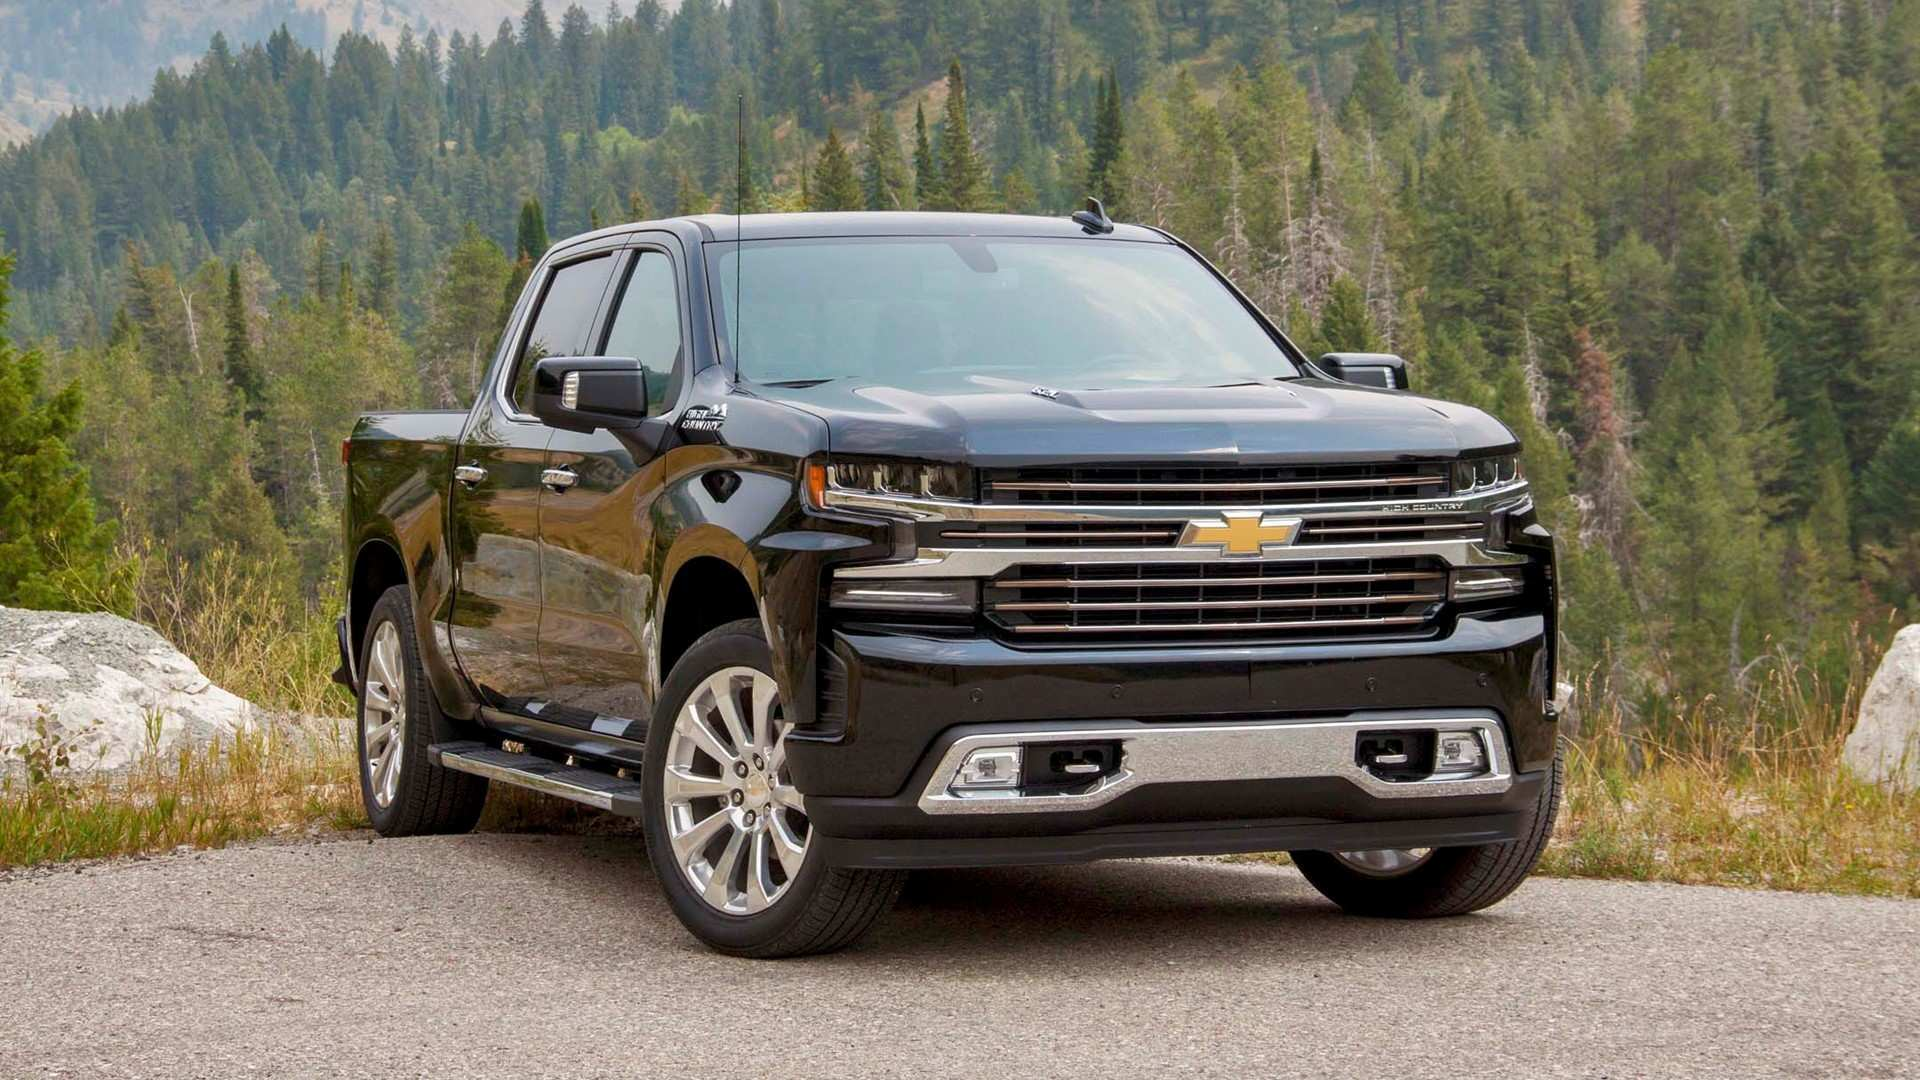 73 All New Chevrolet 2019 Autos First Drive Price Performance And Review Performance with Chevrolet 2019 Autos First Drive Price Performance And Review